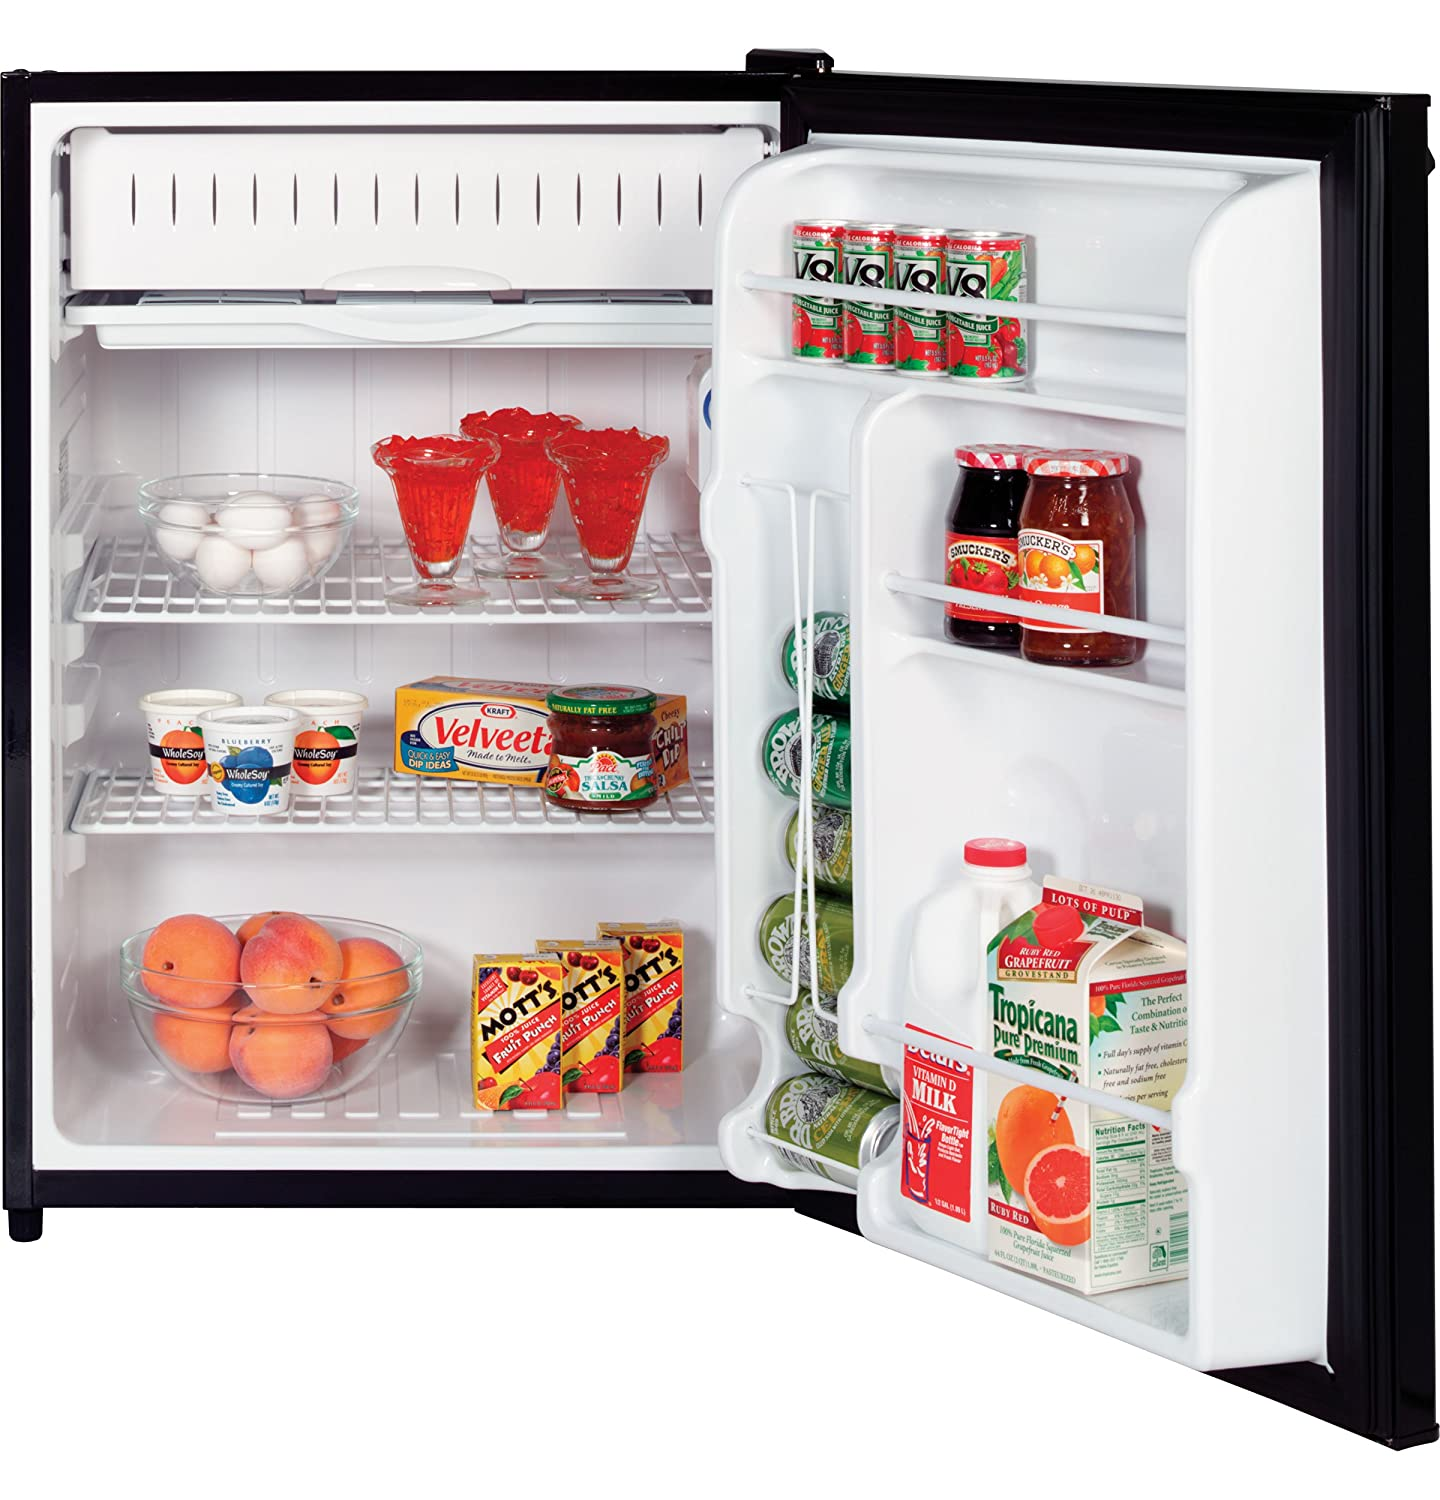 refrigerator 7 5 cu ft. amazon.com: ge gmr06aazbb spacemaker 5.7 cu. ft. black compact refrigerator: home improvement refrigerator 7 5 cu ft